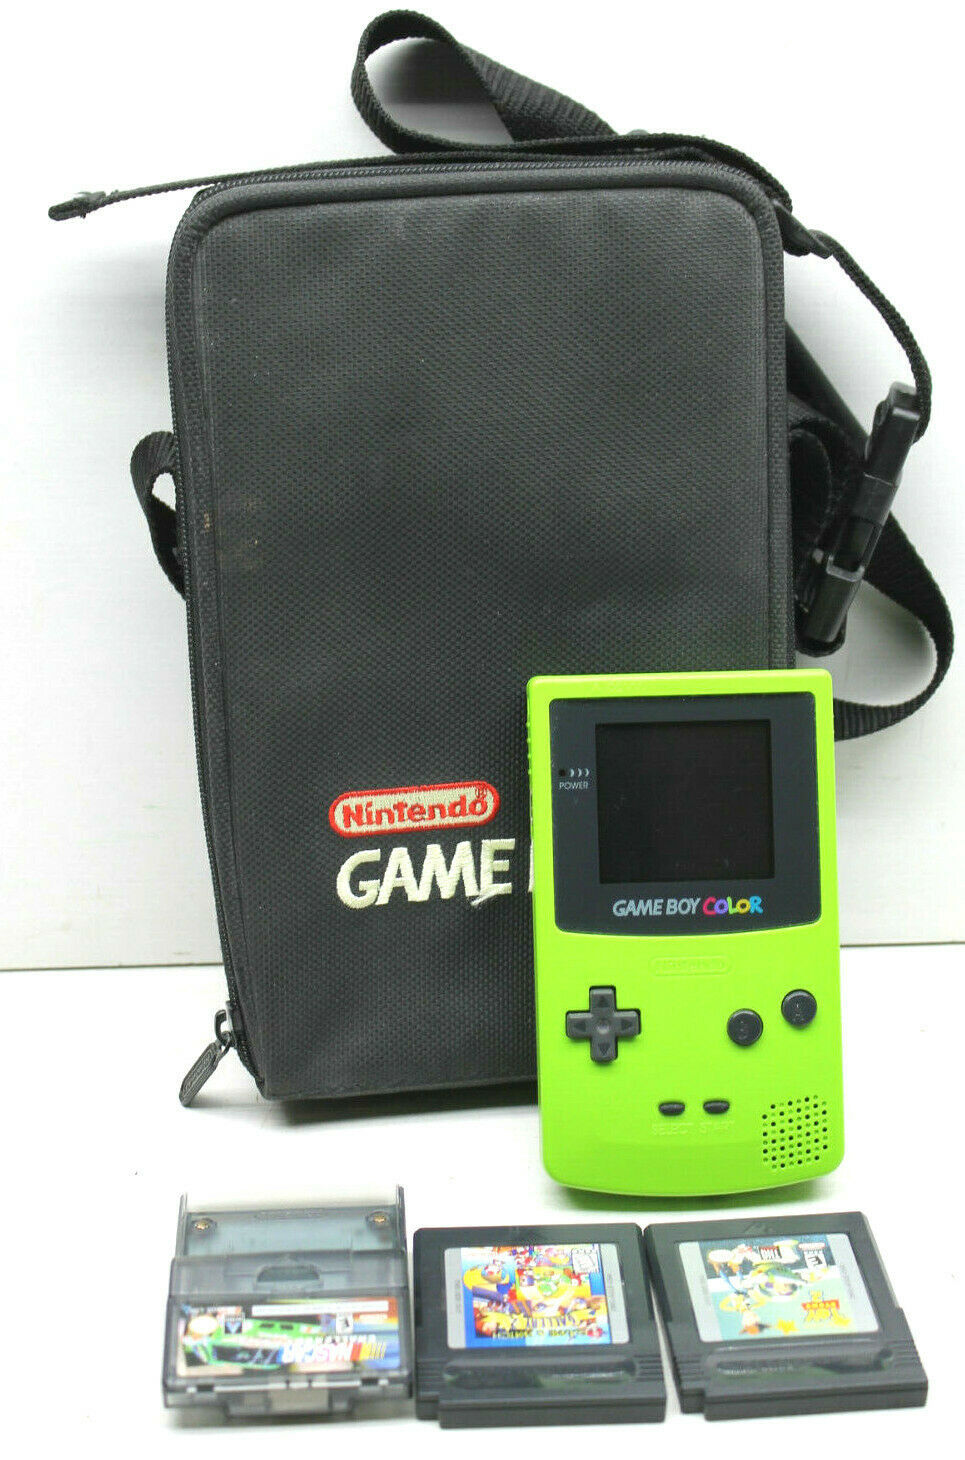 Nintendo Game Boy Color Model #CGB-001 Green w/ 3 Games Gallery 2+Toy Story 2+